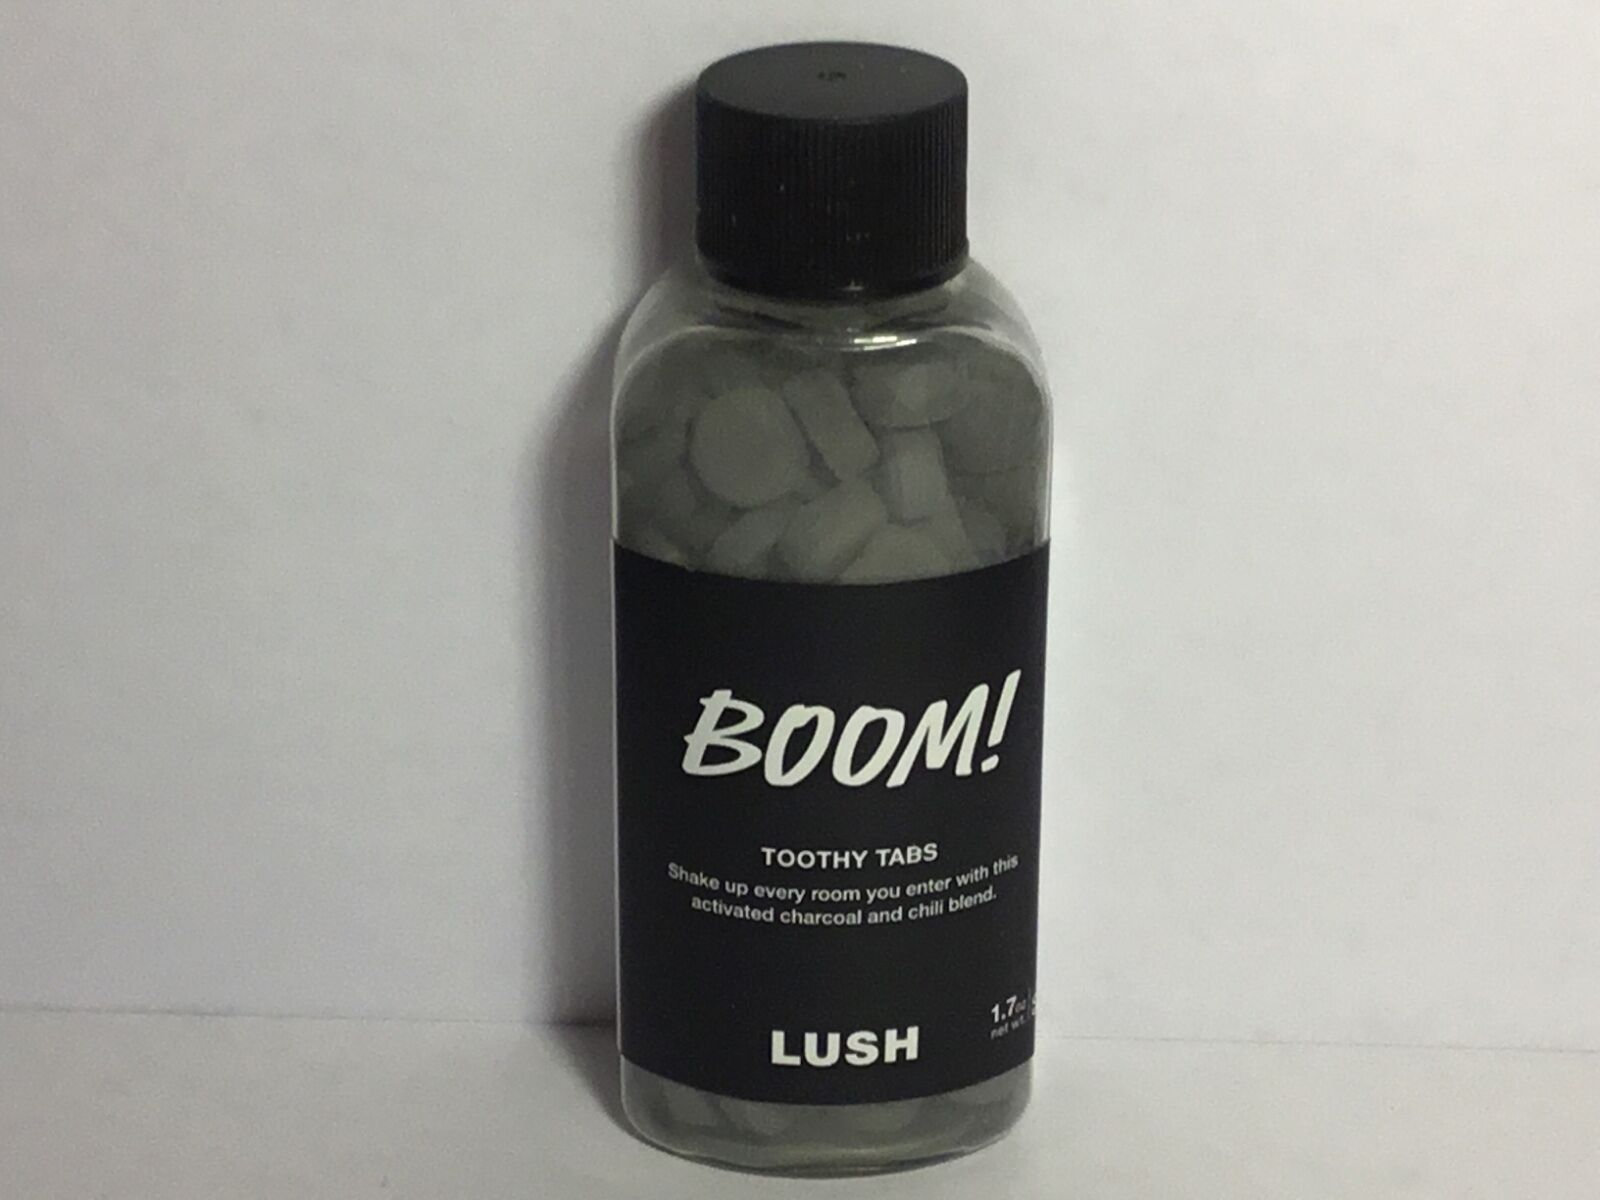 Lush Cosmetics - BOOM TOOTHY TABS - Toothpaste tabs 1.7 oz VEGAN DENTAL DYNAMIT.